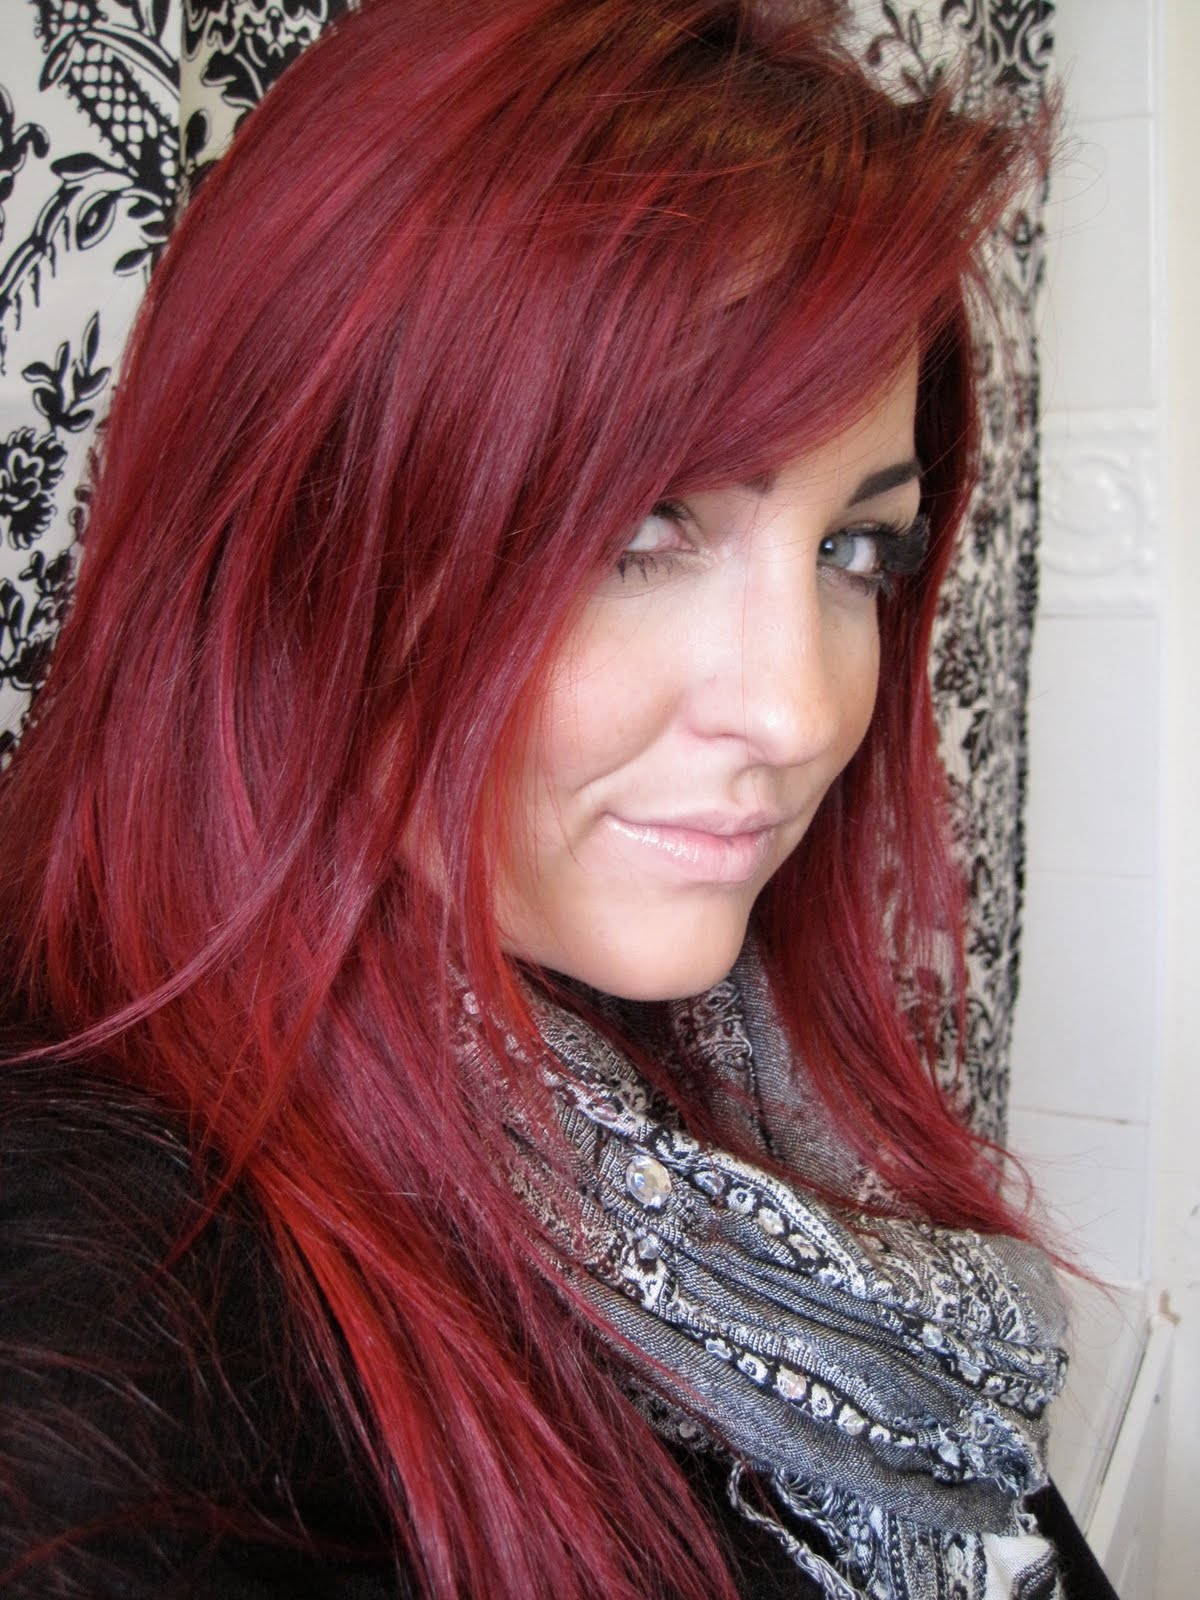 Cherry Coke Red Hair Dye Images